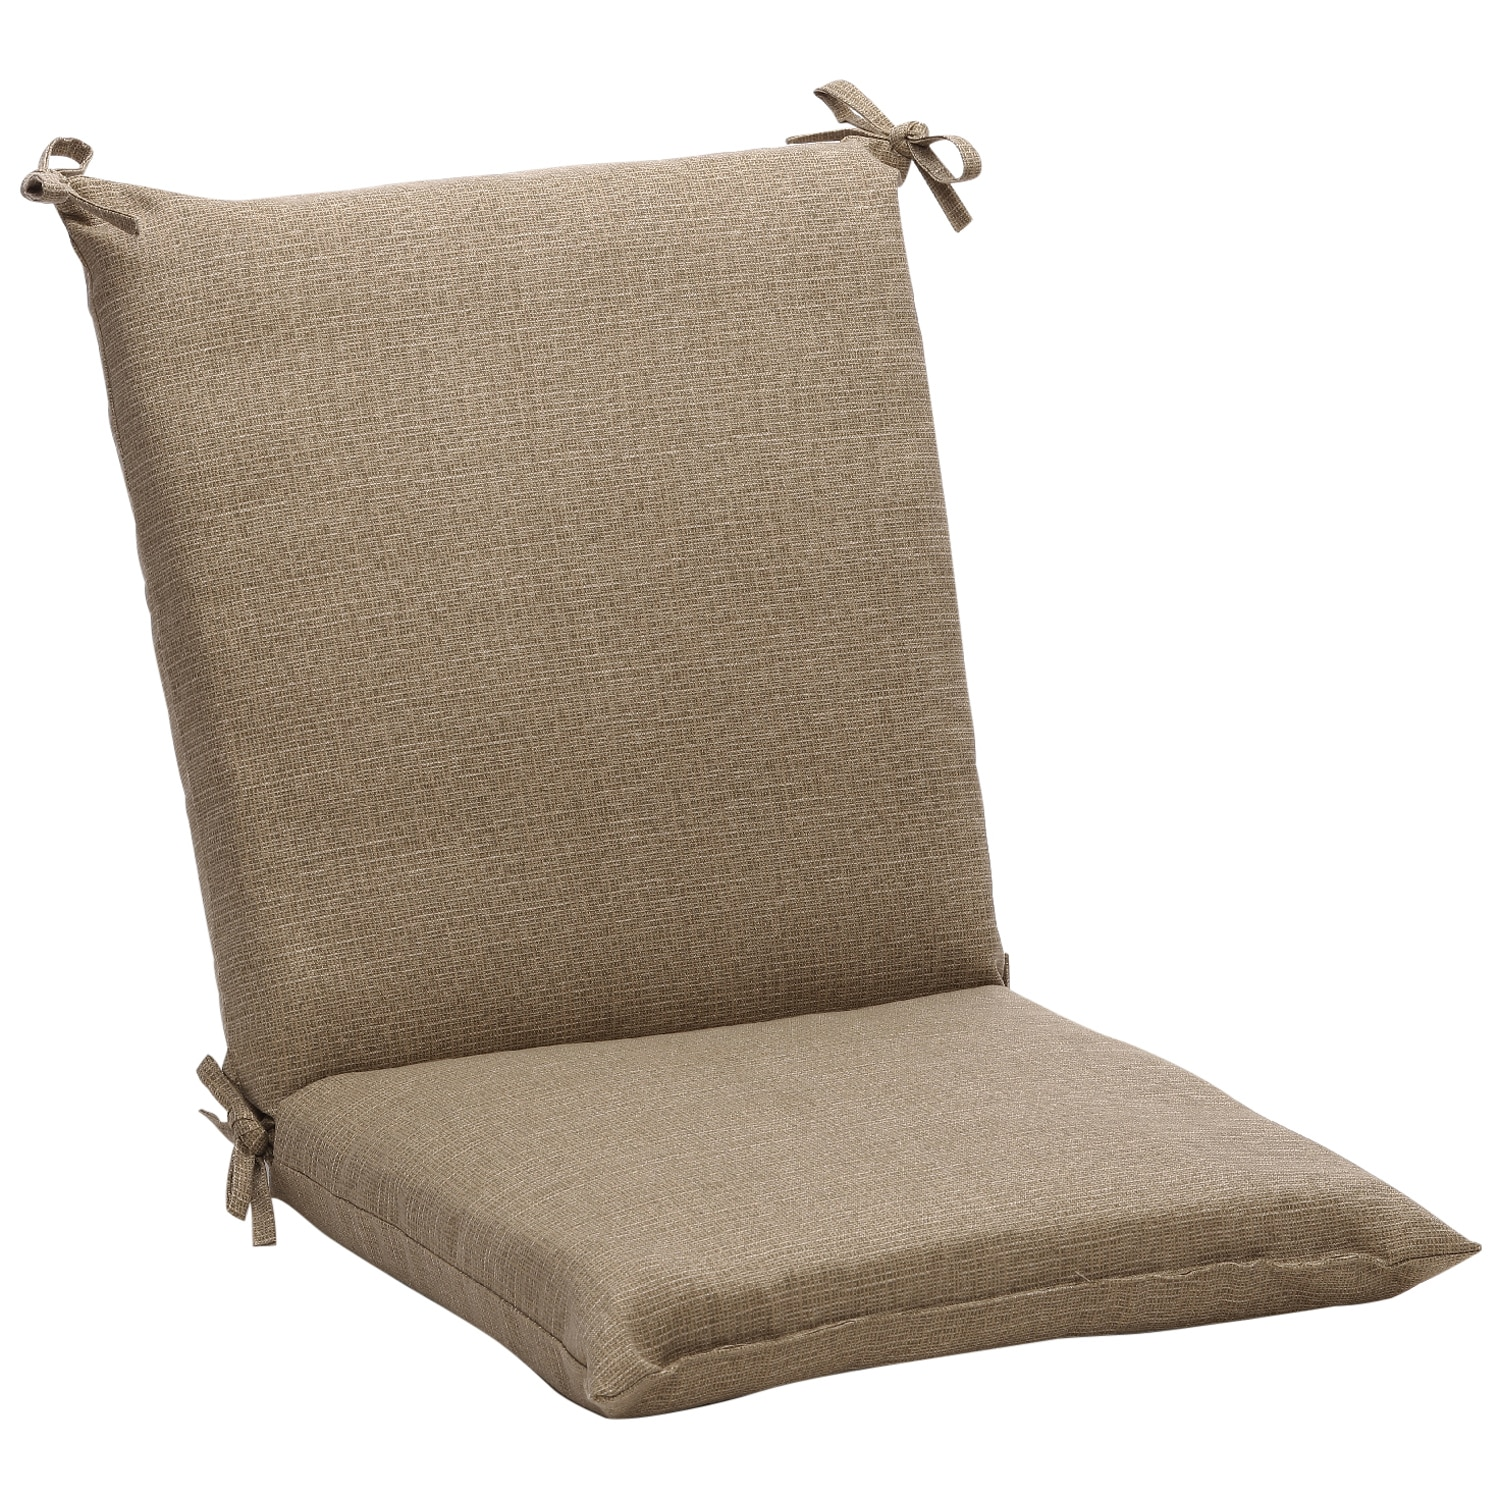 Squared Solid Taupe Textured Outdoor Chair Cushion